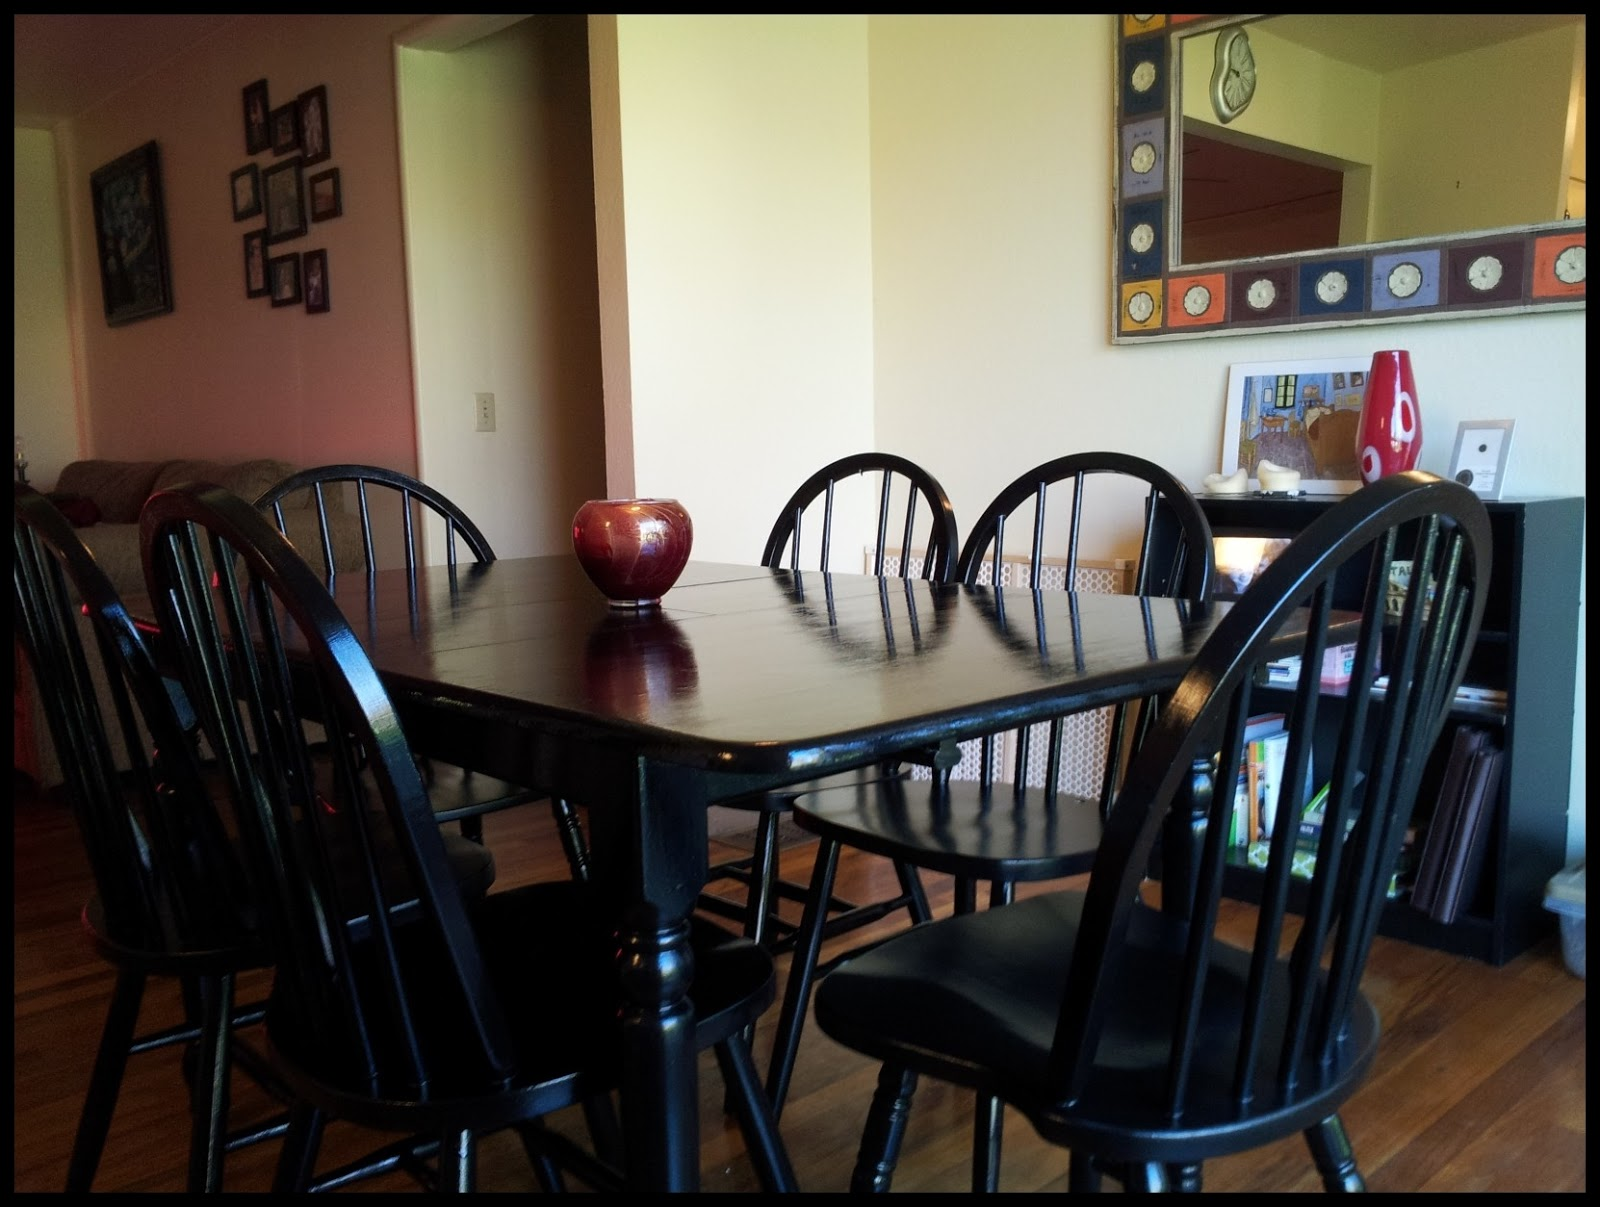 kitchen table redo part 3 and half redo kitchen table I finally finished the kitchen table And just in time to show it off at my birthday party this past weekend I am going to say it